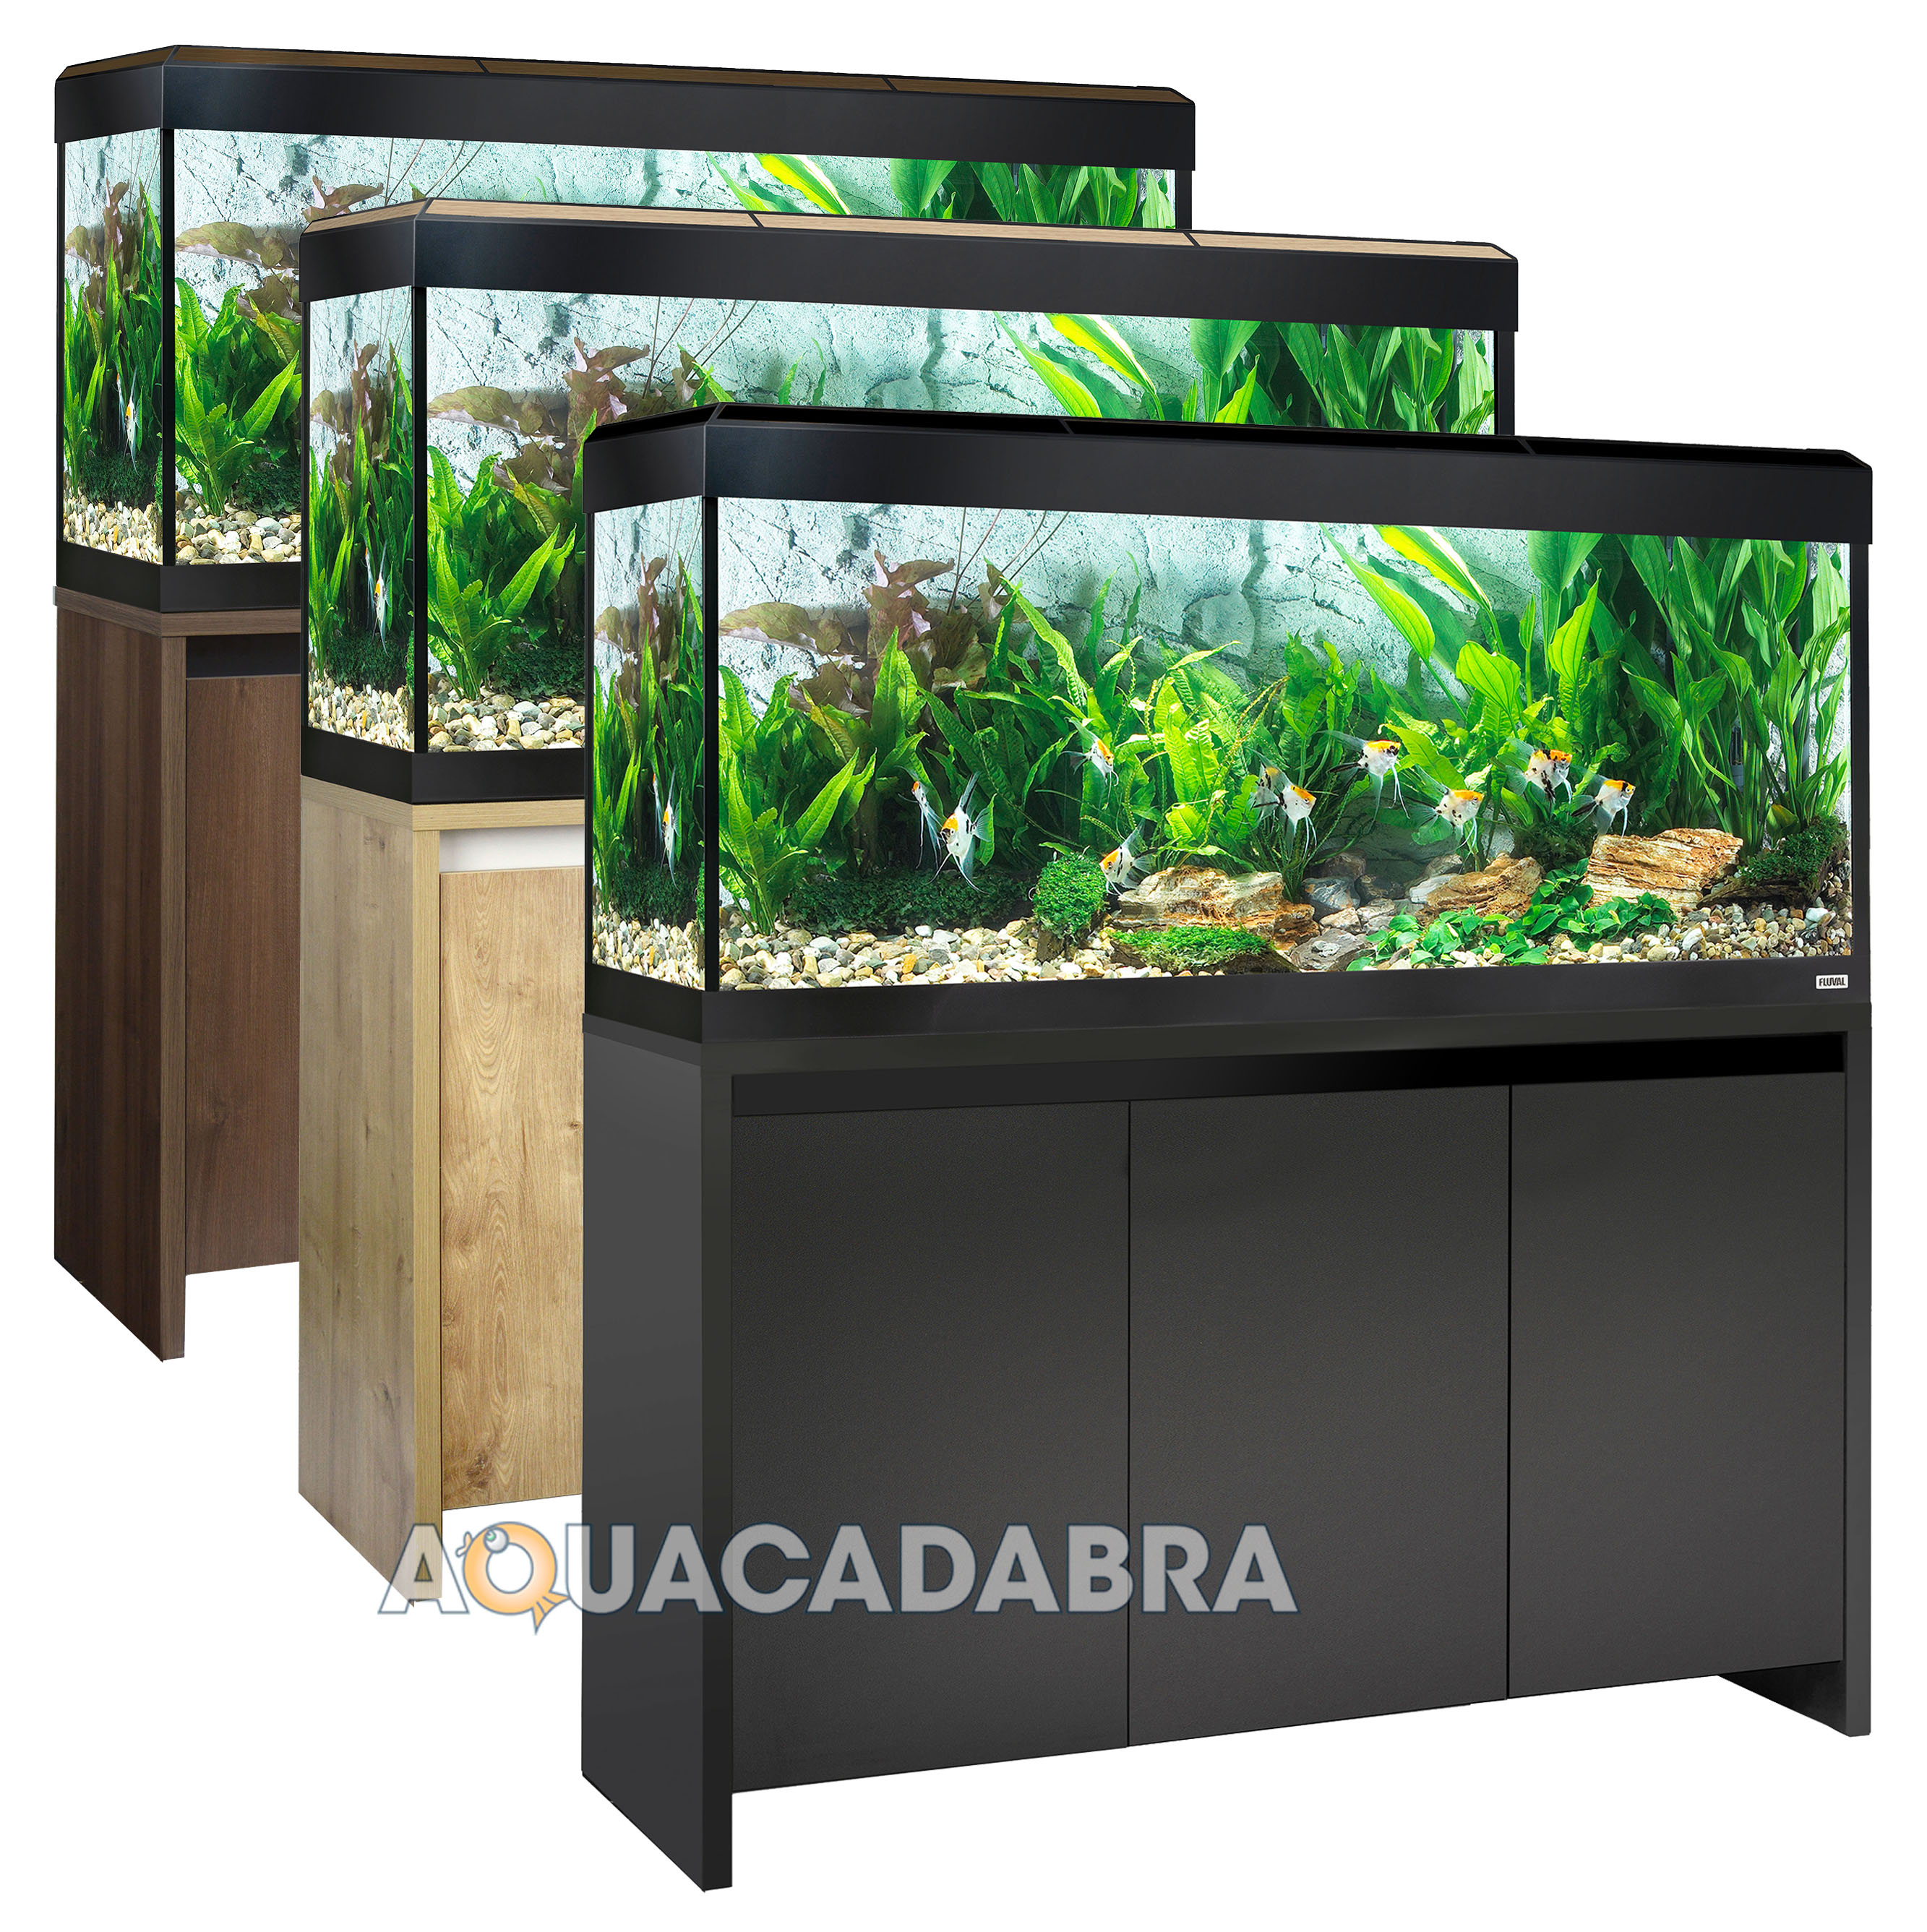 Fluval roma led aquariums 90 125 200 240l oak walnut black for Fluval fish tank